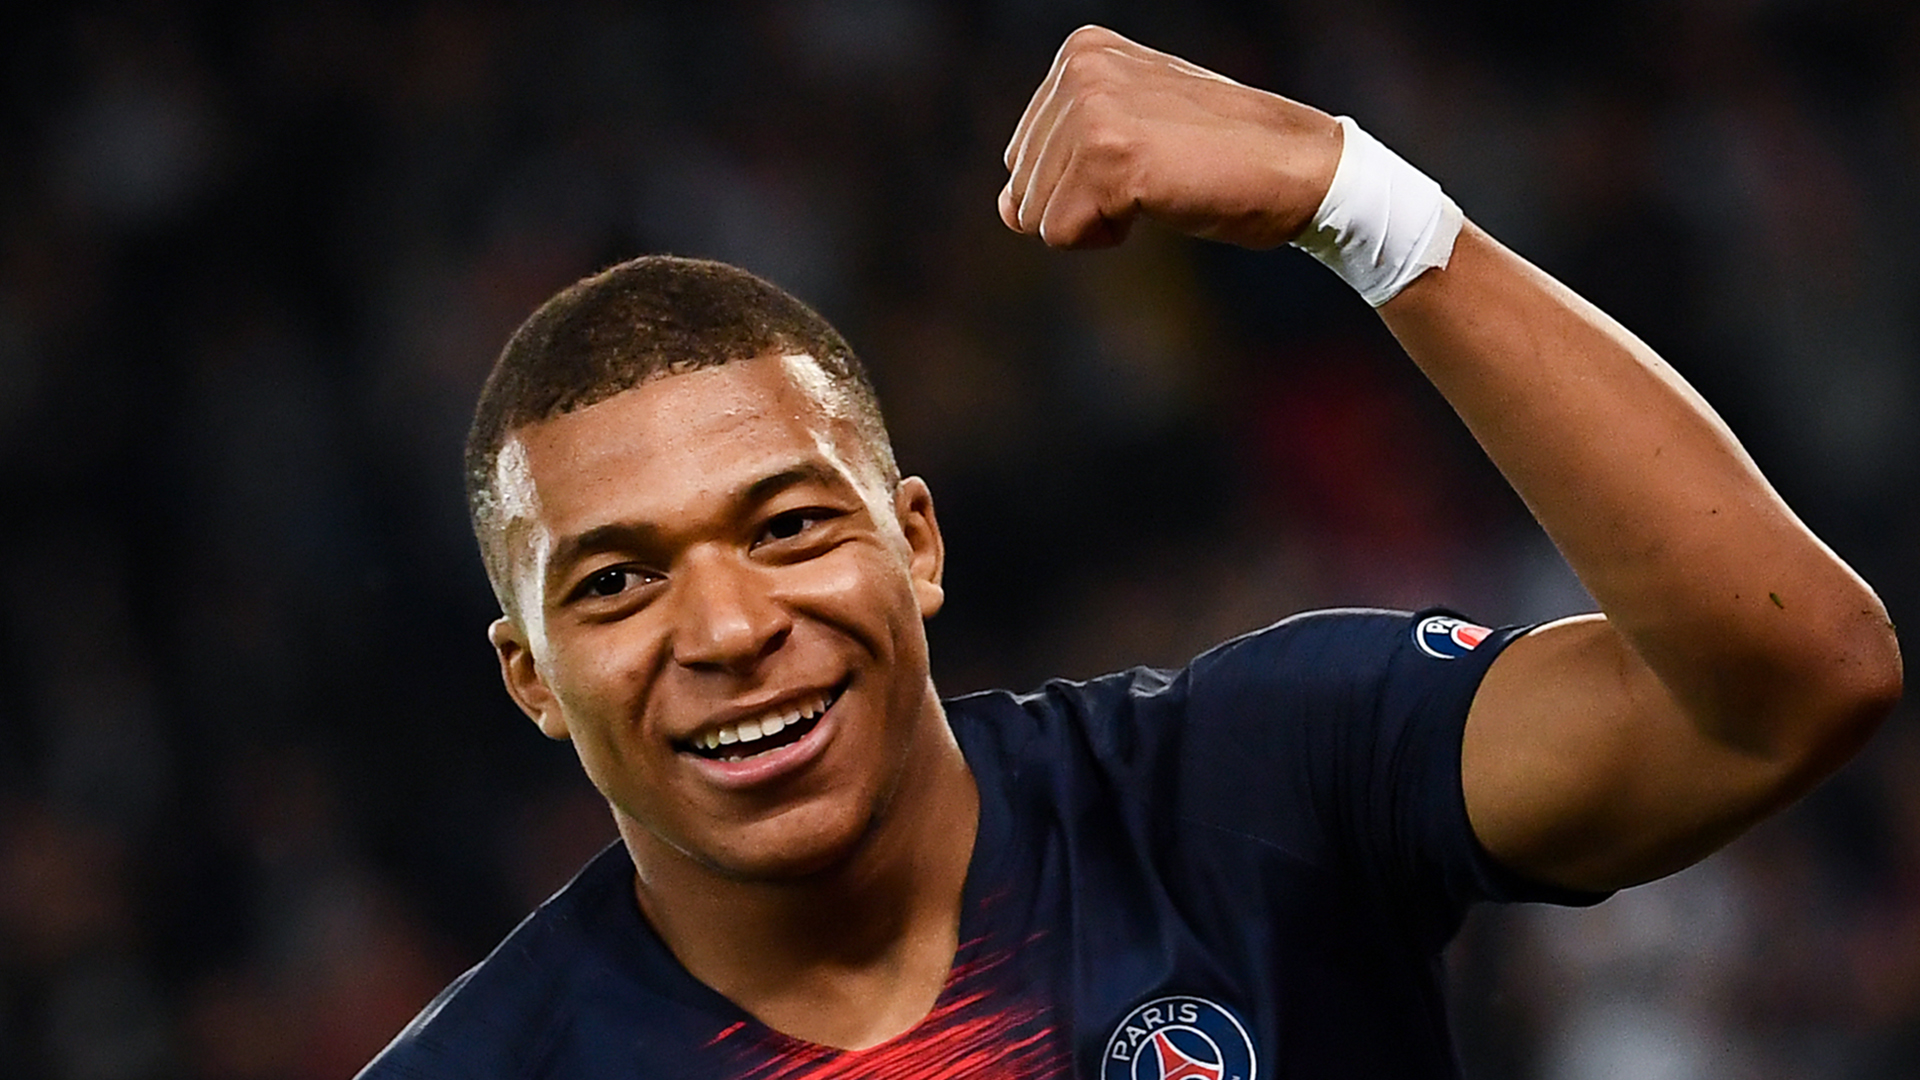 Kylian Mbappe says he could emulate Reds star with career move